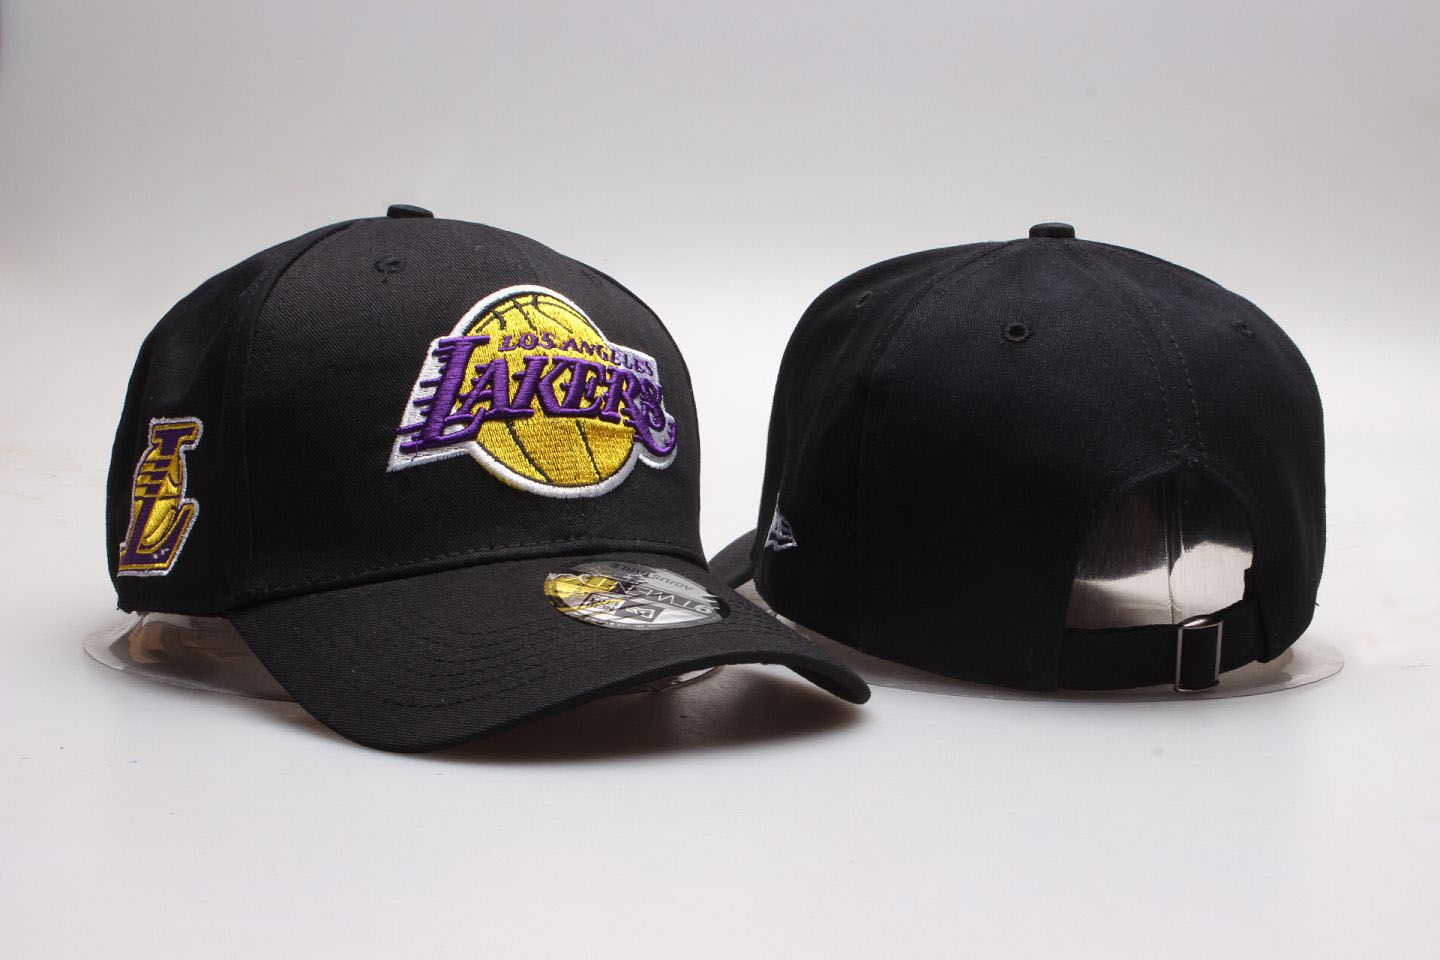 NBA Los Angeles Lakers Snapback hat 201811259